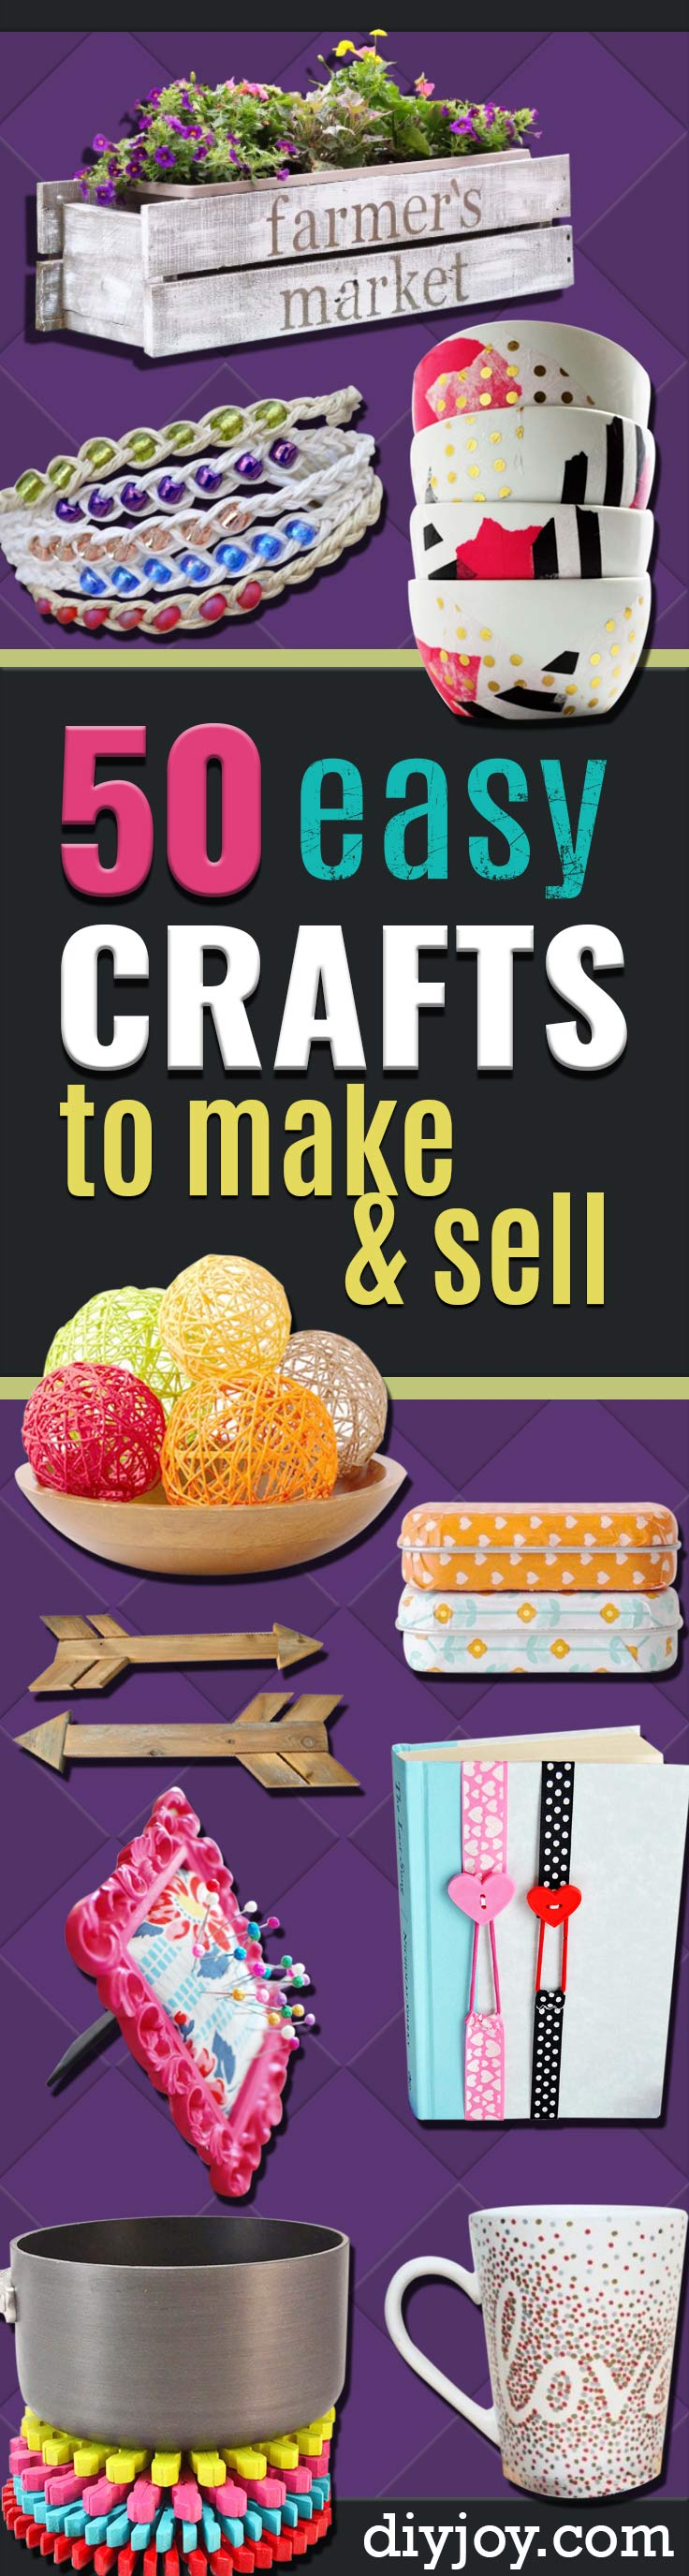 craft ideas for craft shows 50 easy crafts to make and sell 6155